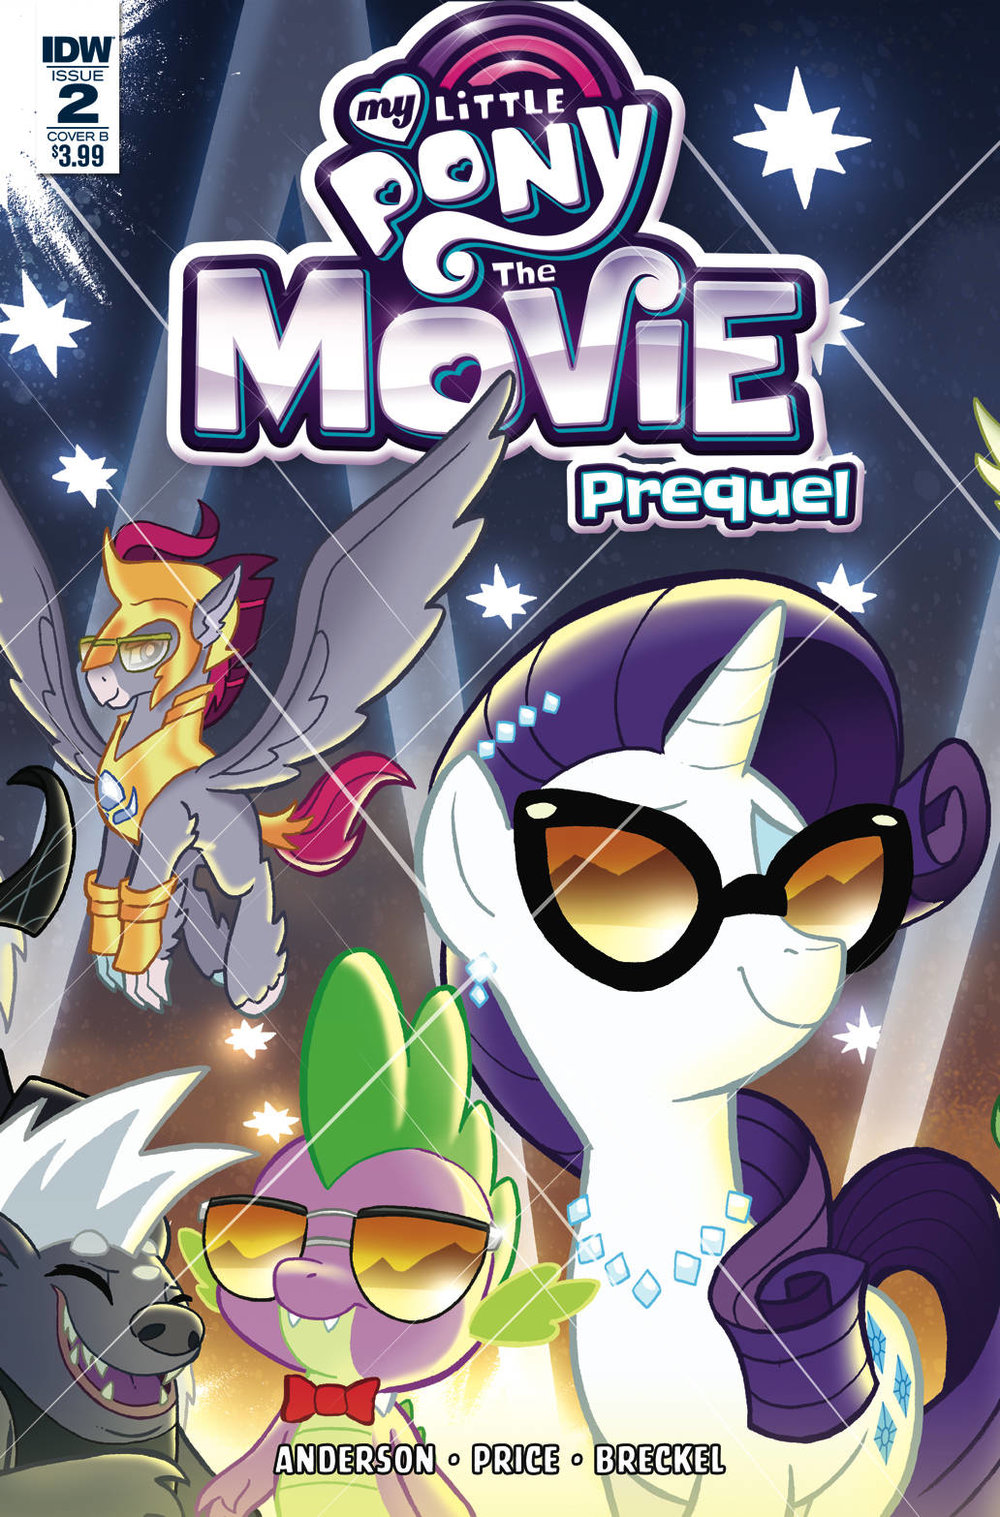 MY LITTLE PONY MOVIE PREQUEL 2 CVR B FLEECS.jpg